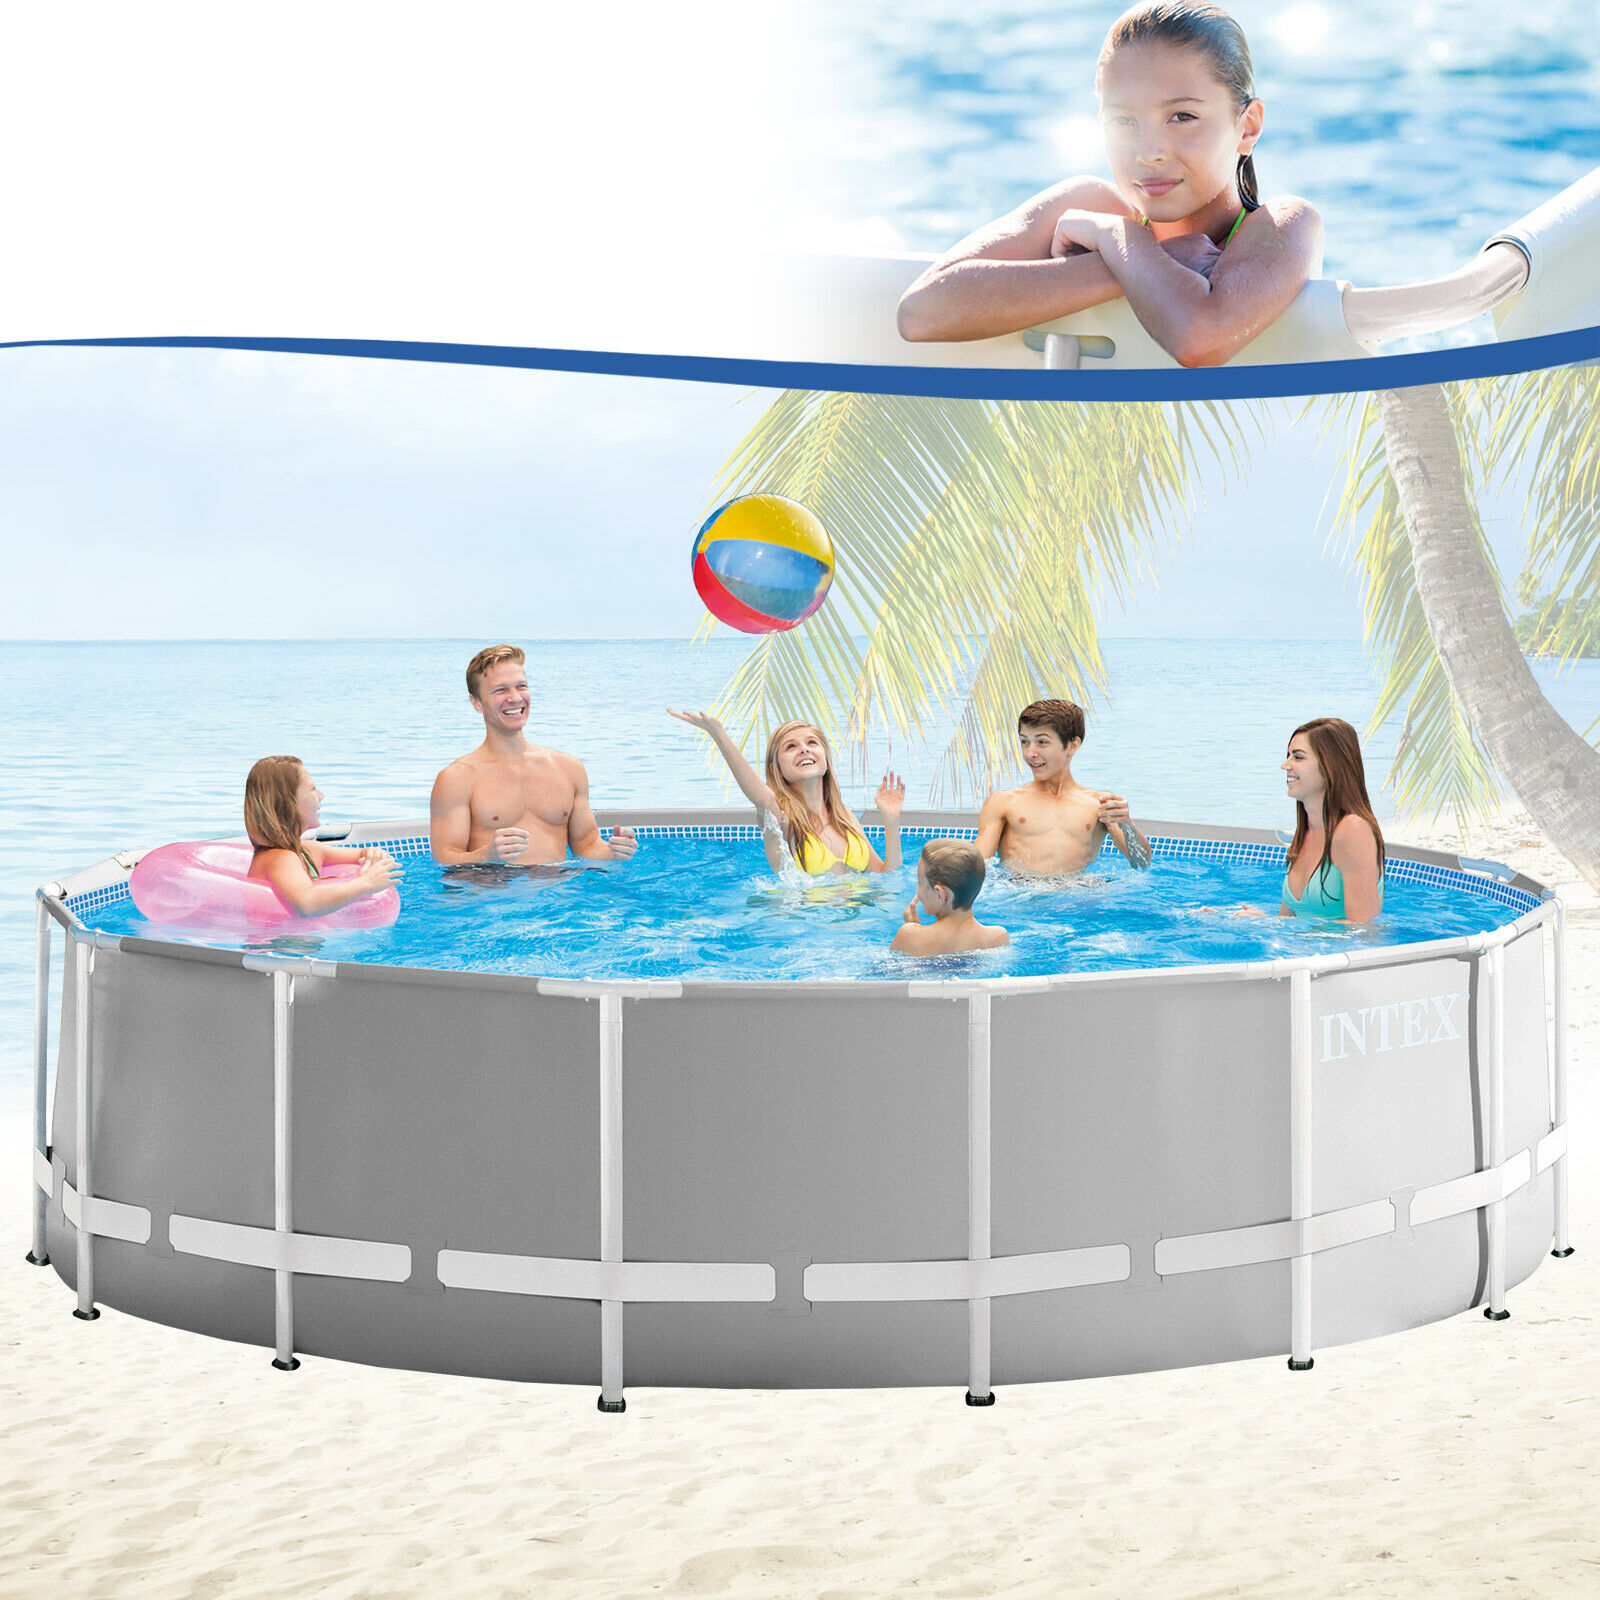 Intex 457x122 cm schwimmbecken swimming pool schwimmbad for Swimmingpool stahl